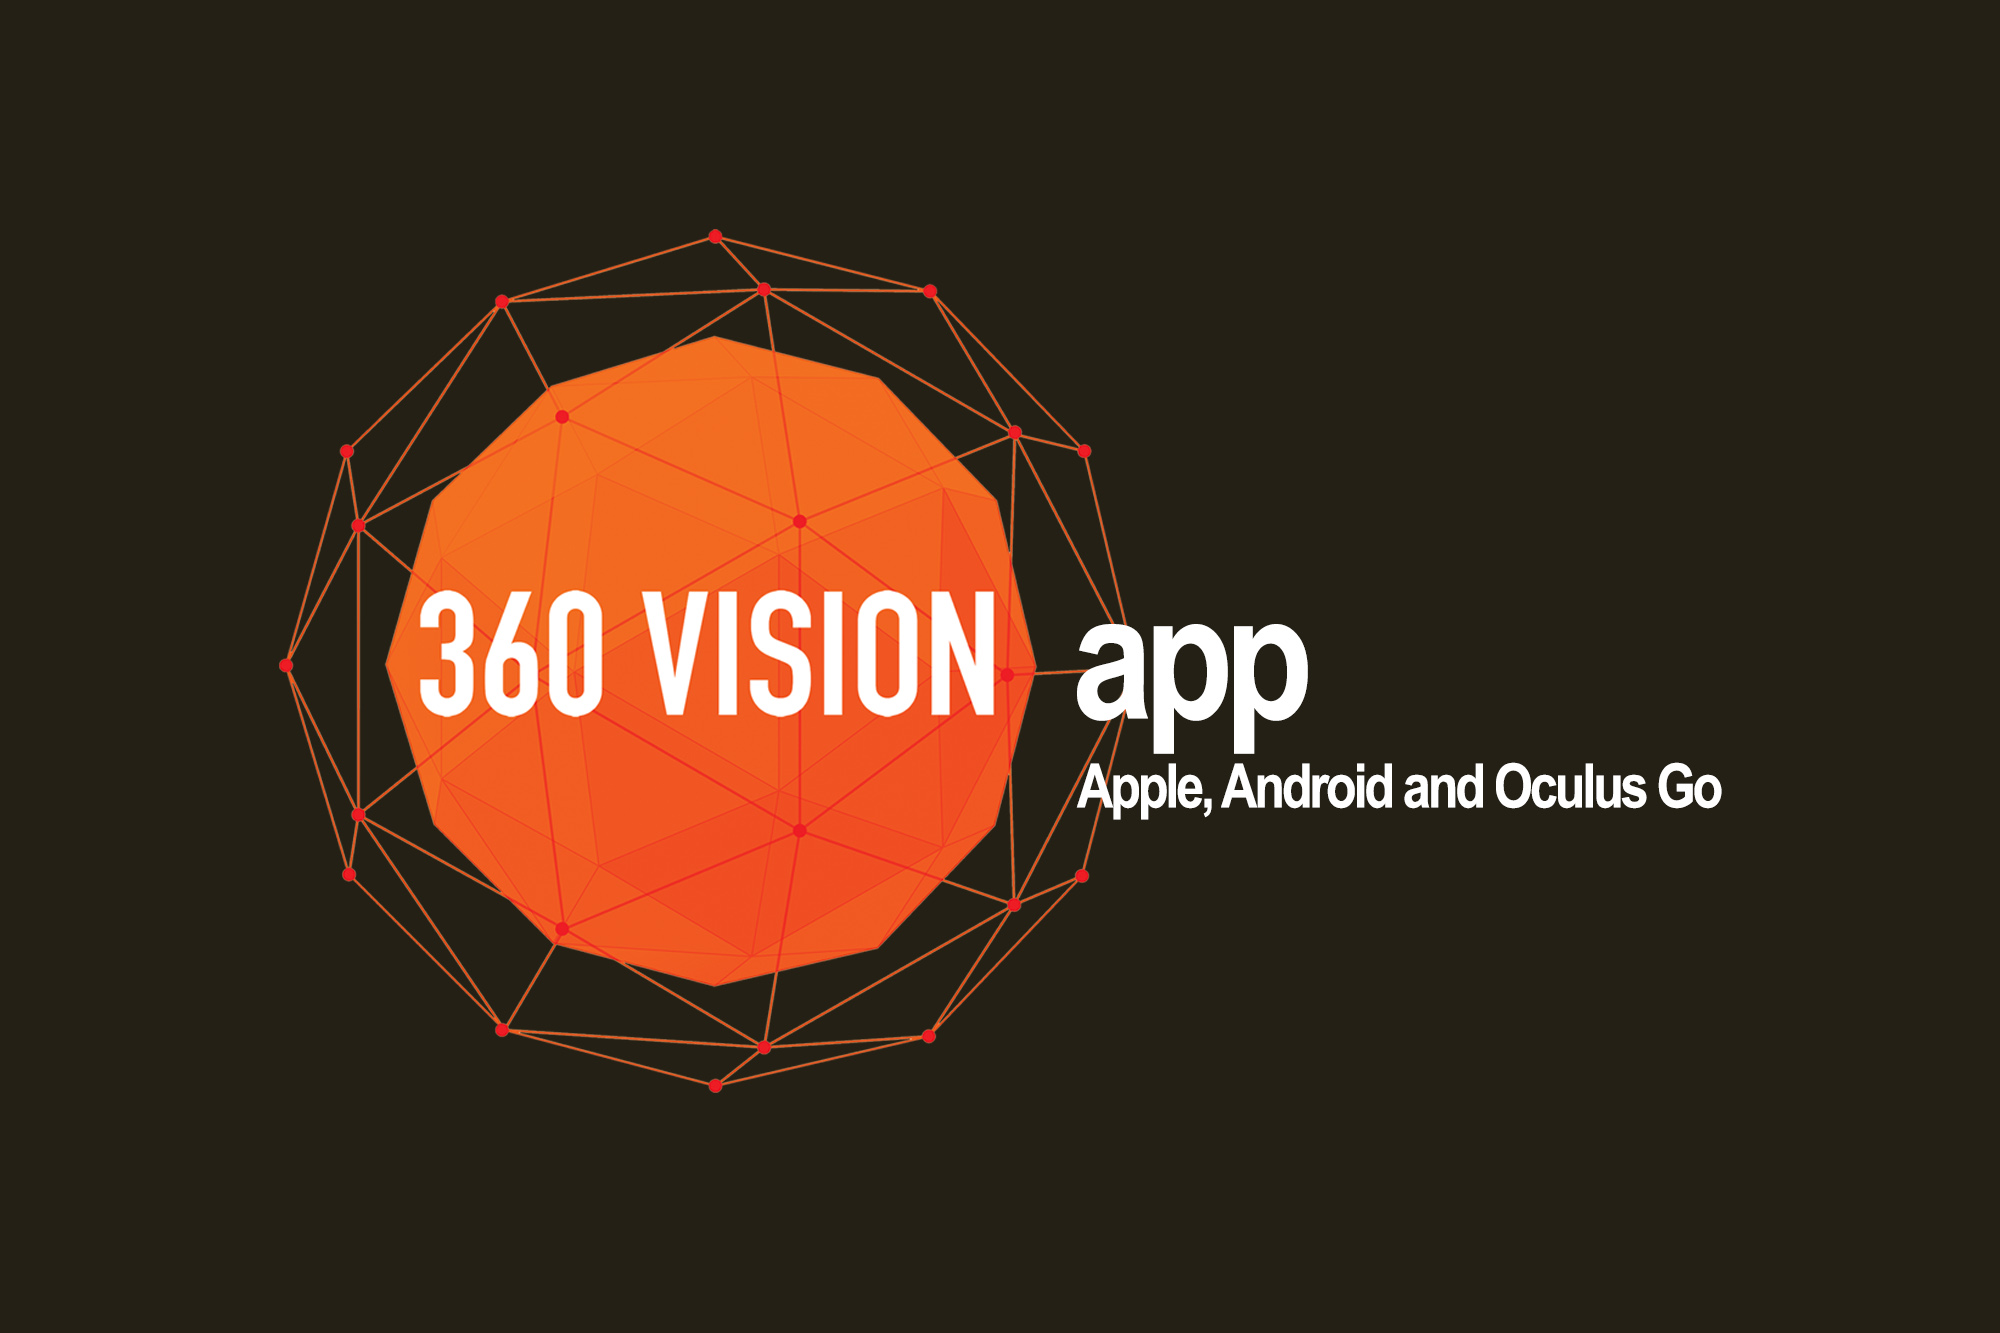 360 Vision app is now available now, News